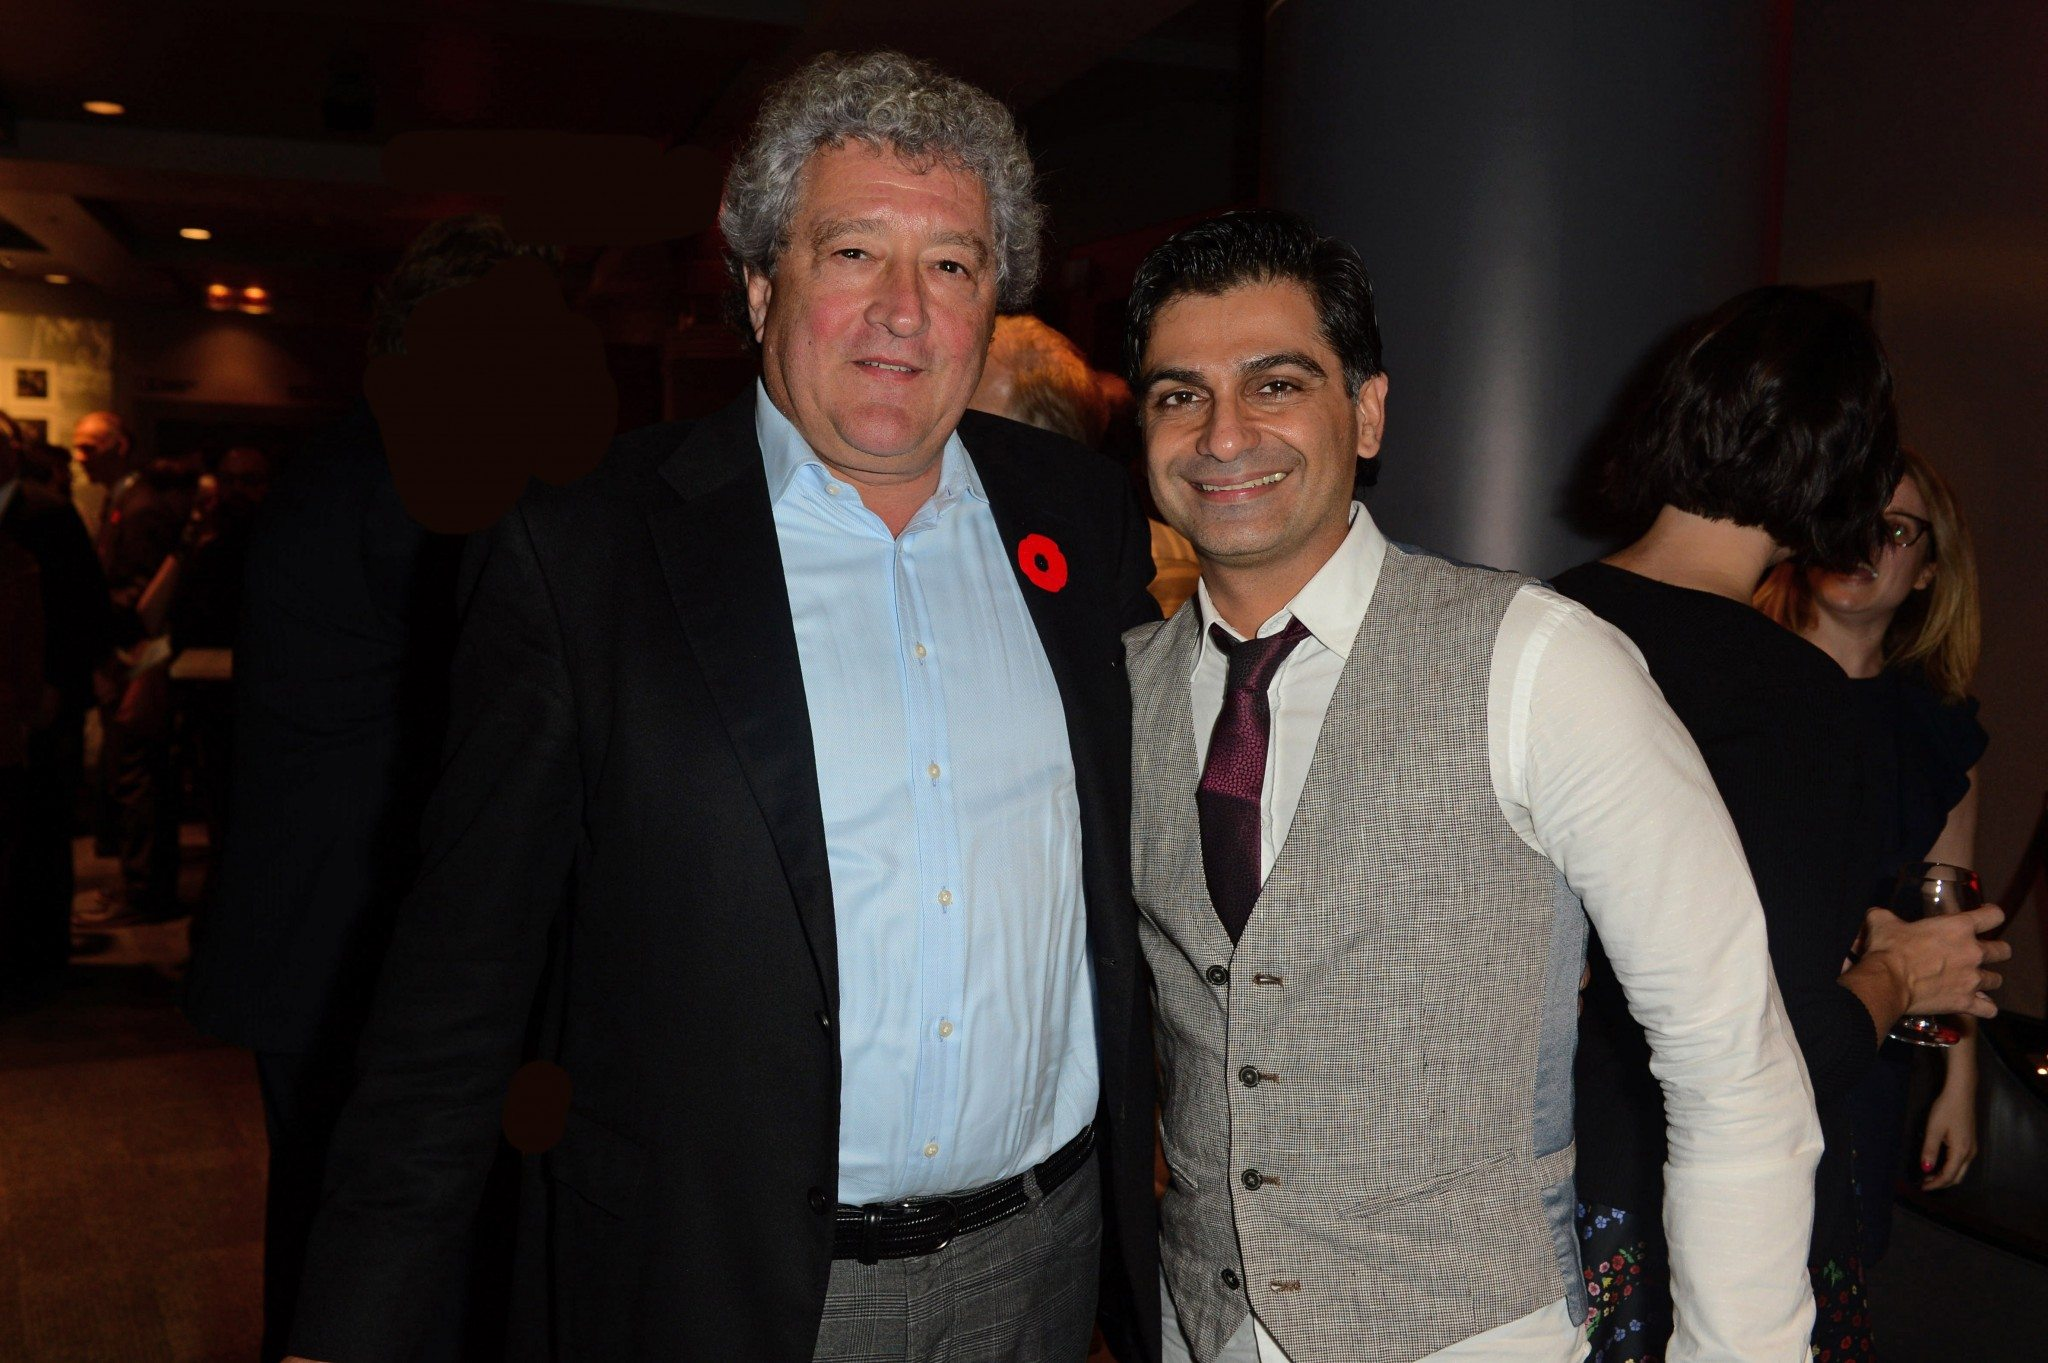 Brad Martin and Anosh Irani(Photo: Tom Sandler)